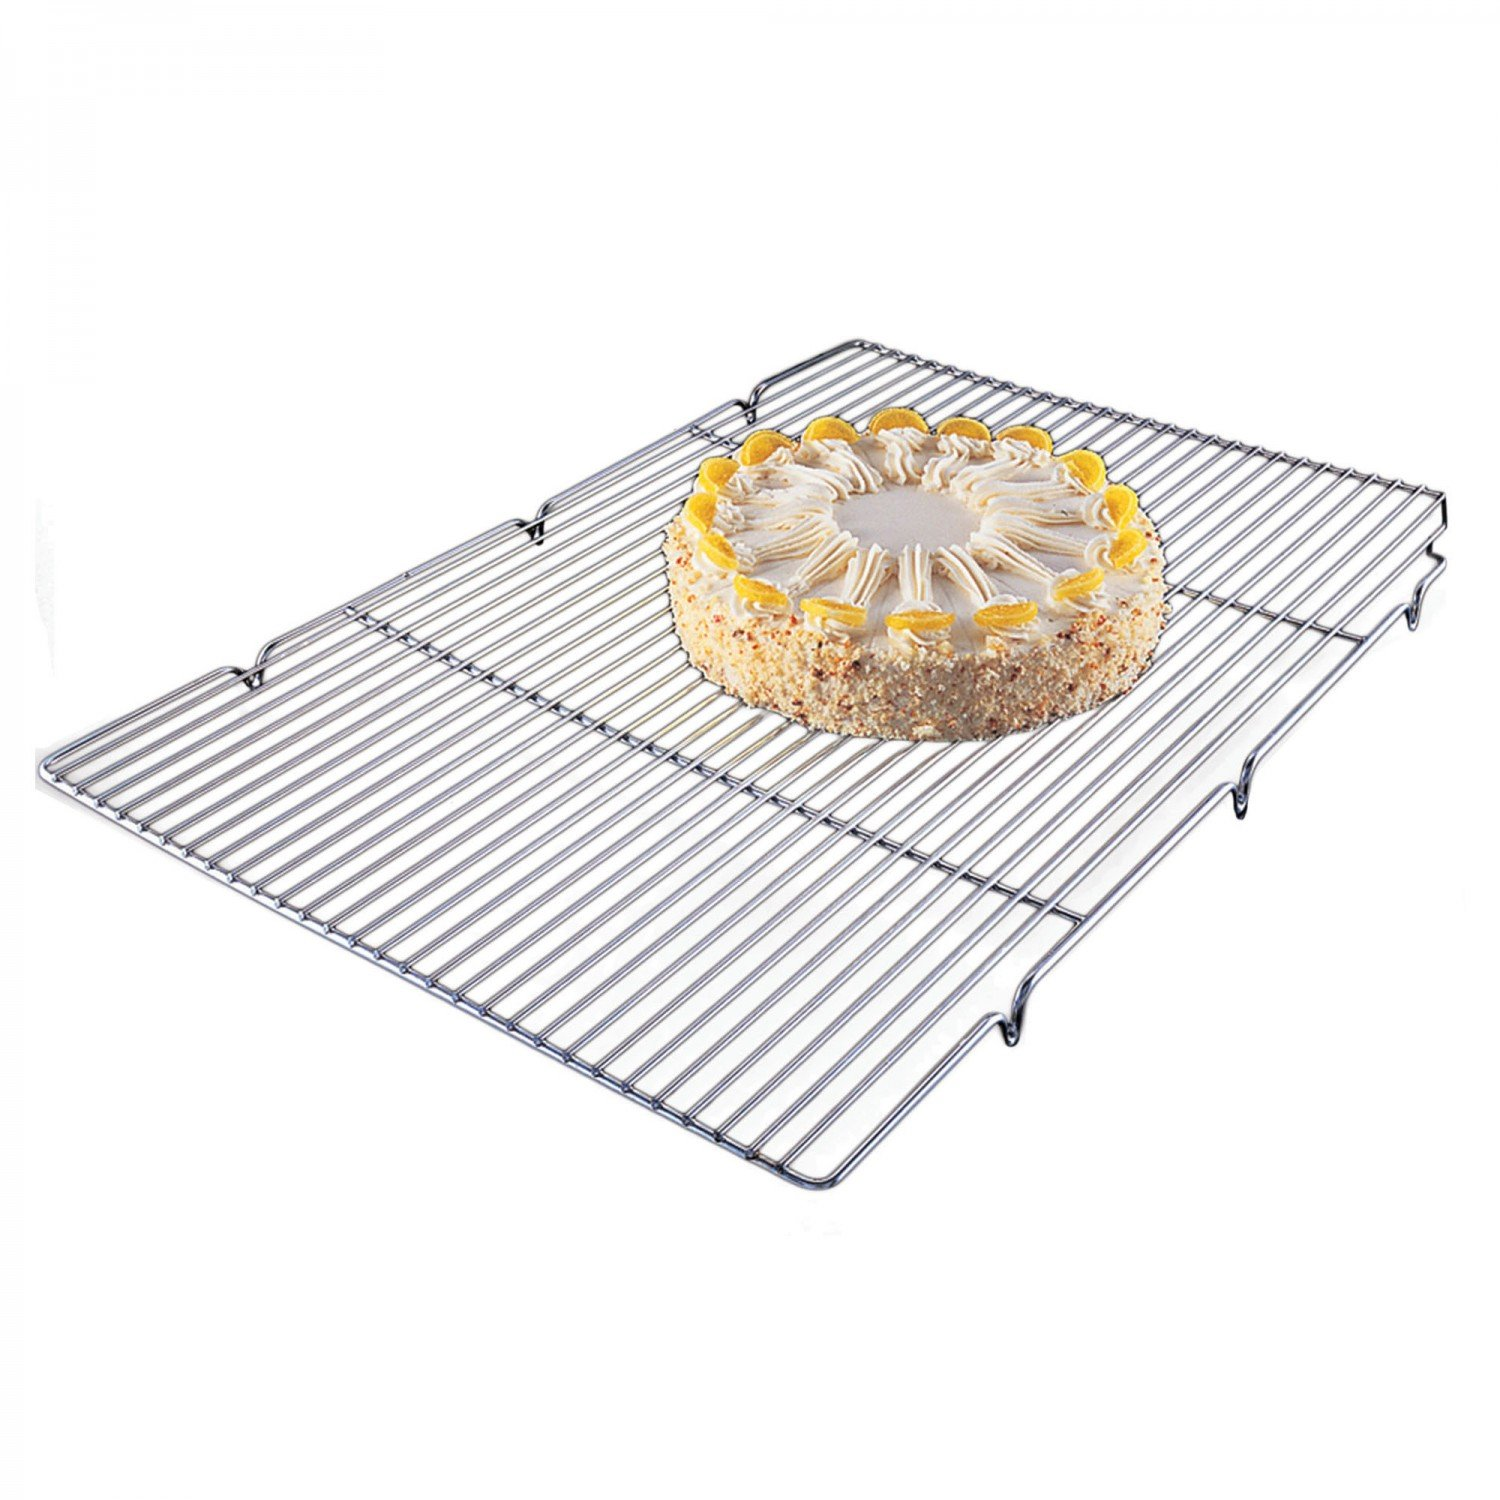 Focus Foodservice 301WS Cooling Grate With Integrated Feet, 16-1/2